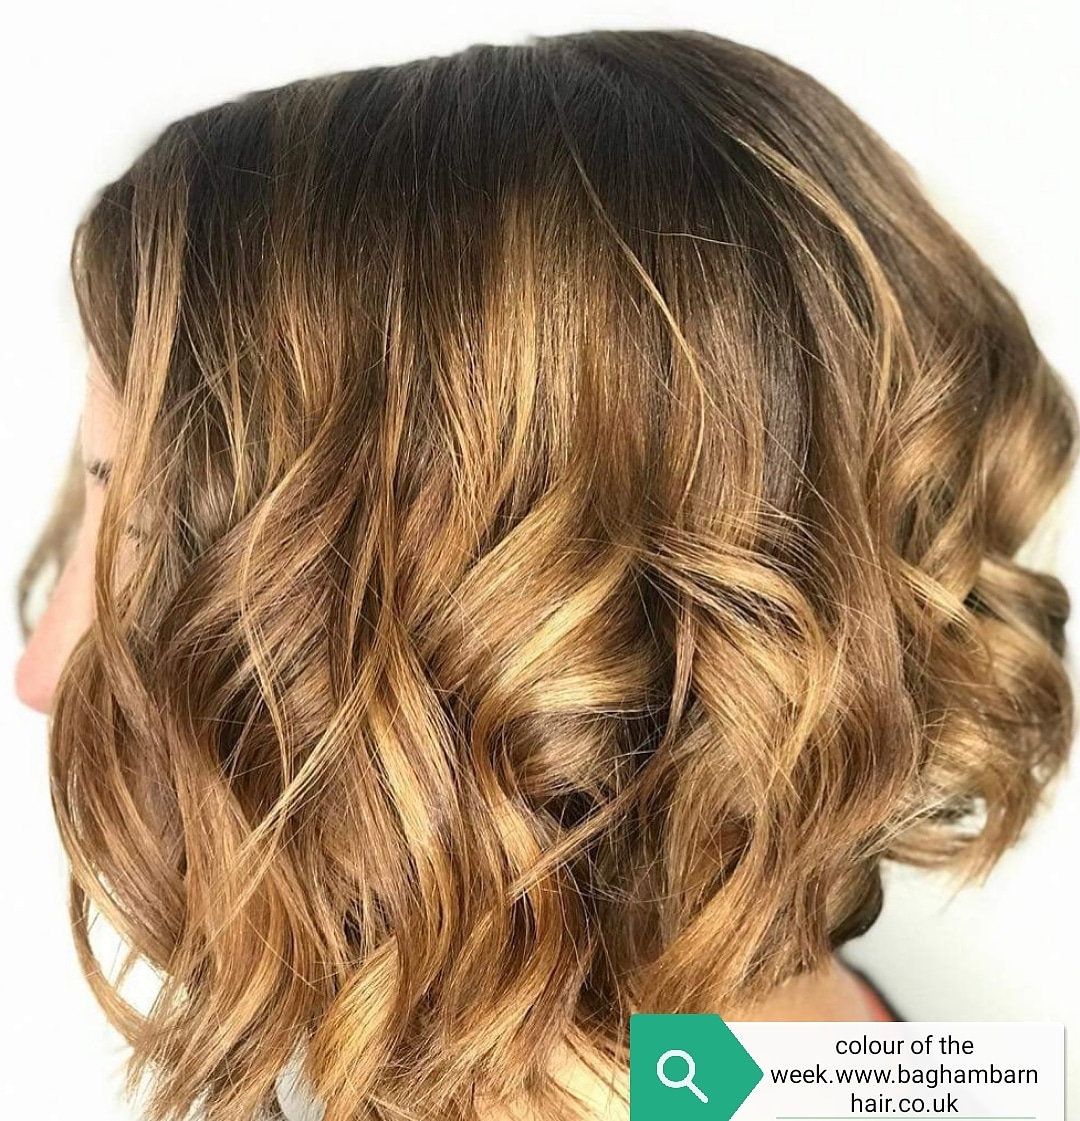 Curly Blow-Dry for Short Hair